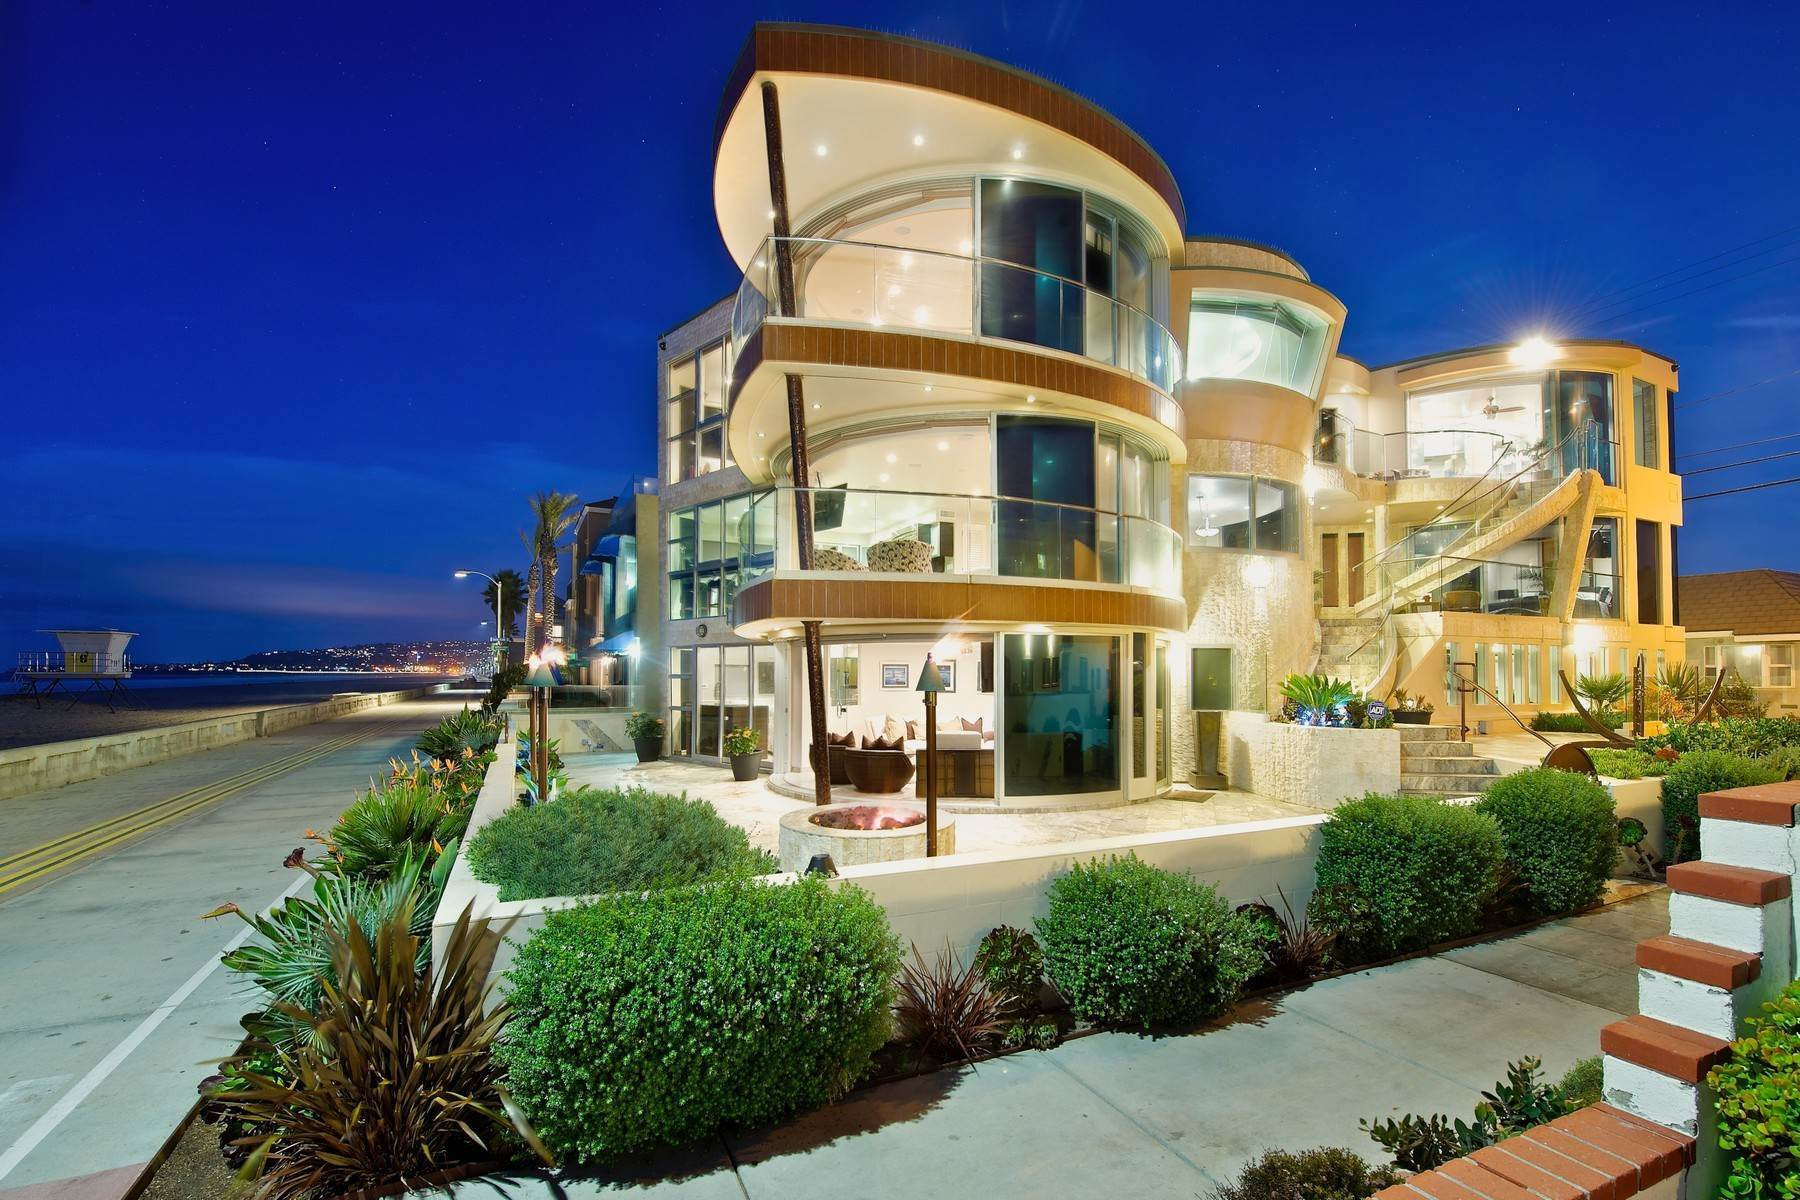 Single Family Homes for Sale at Architectural Masterpiece- Mission Beach 3671-75 Ocean Front Walk San Diego, California 92109 United States